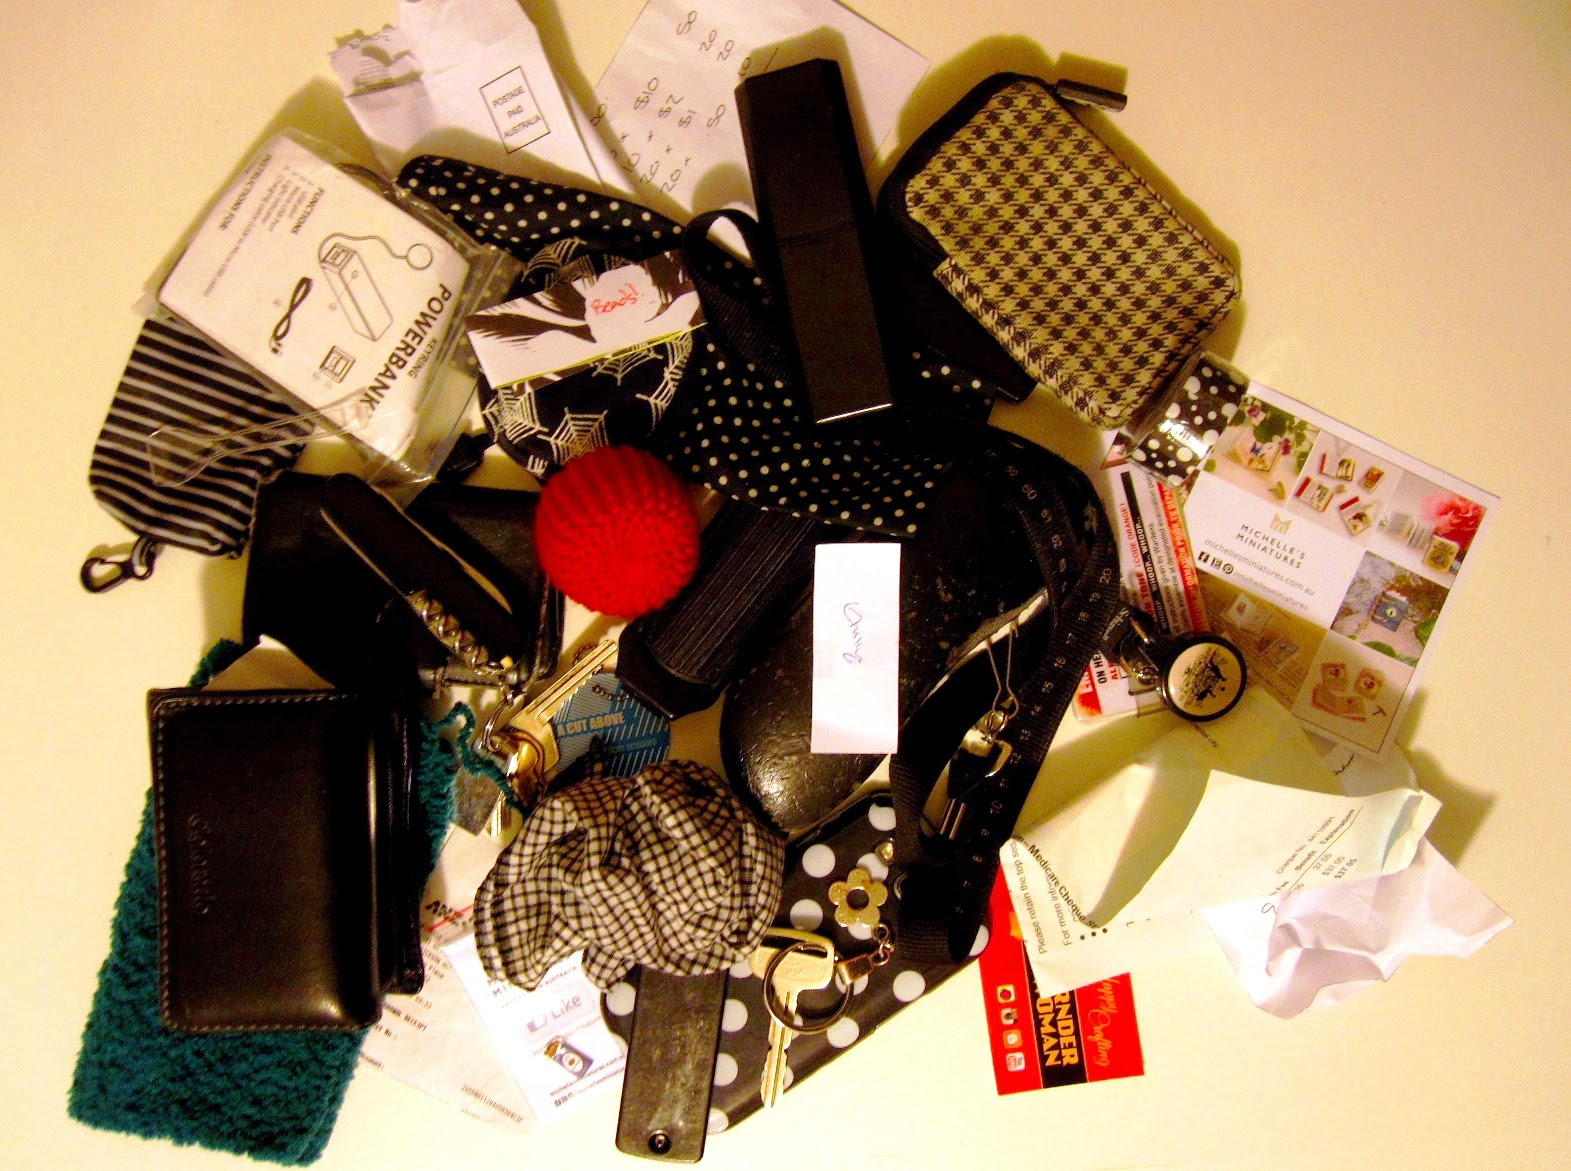 Large pile of items from a handbag including keys, hankie, wallet, various cases, business cards, scrunched up pieces of paper and a dolls' house miniature knitted pouffe and rug.